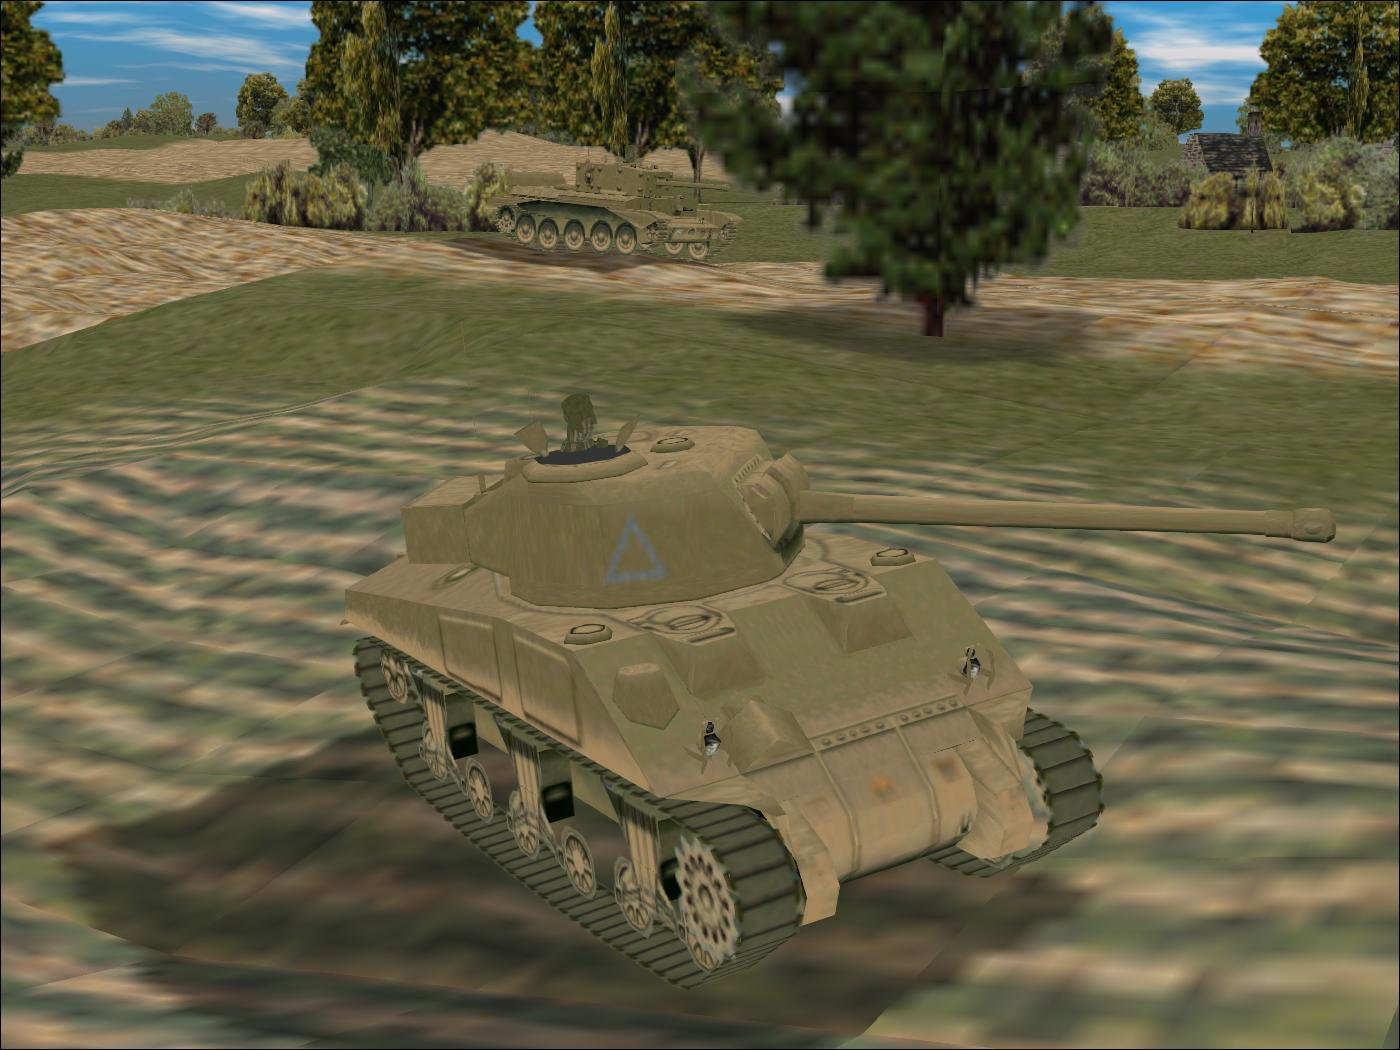 Panzer Elite Brit44-x beta - Sherman Firefly & Cromwell, Normandy